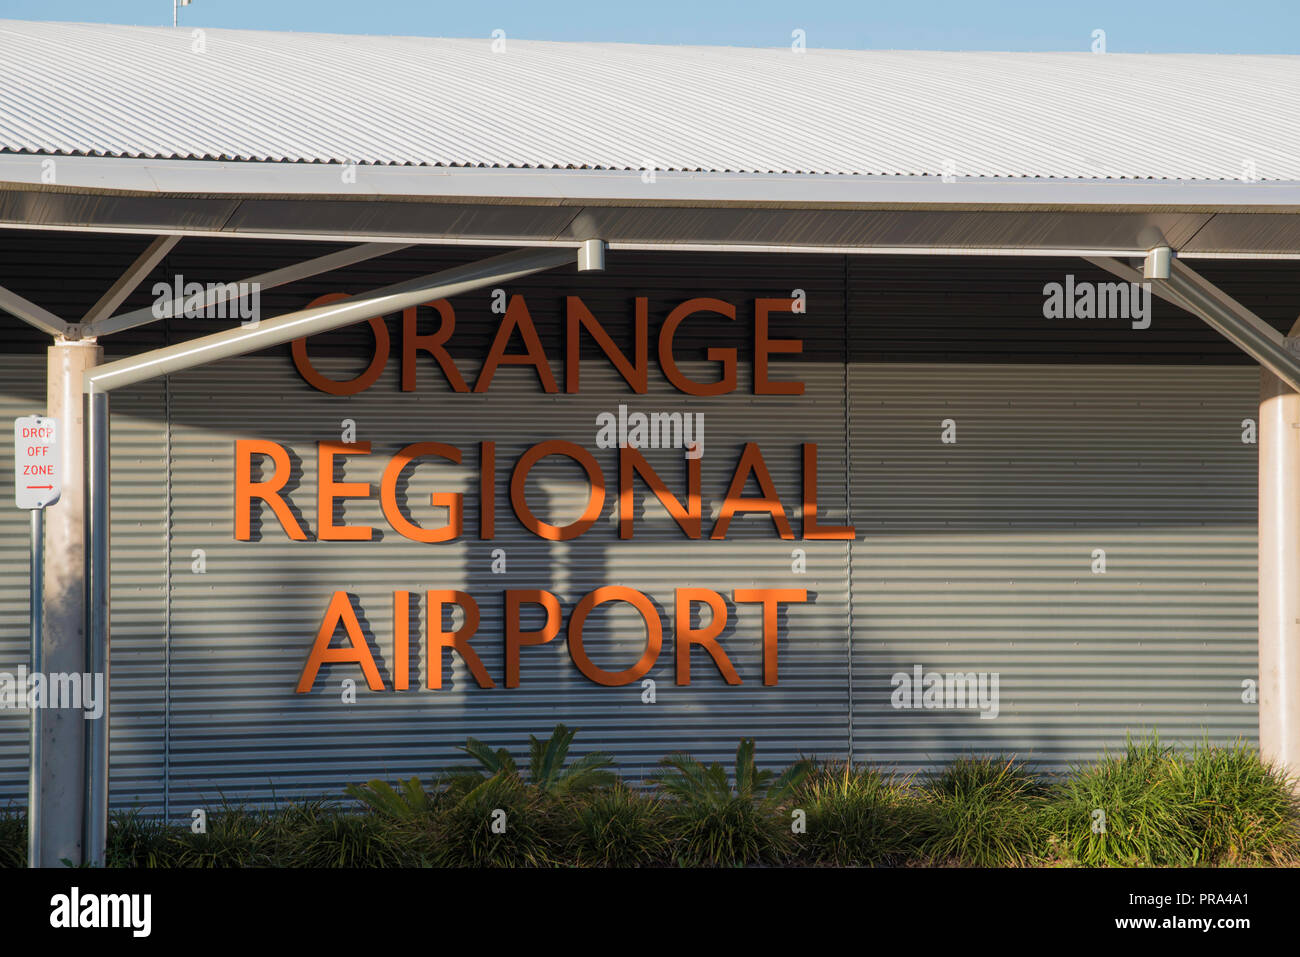 Orange Regional Airport is located in the Central Tablelands region of New South Wales between the city of Orange and the town of Blayney in Australia - Stock Image